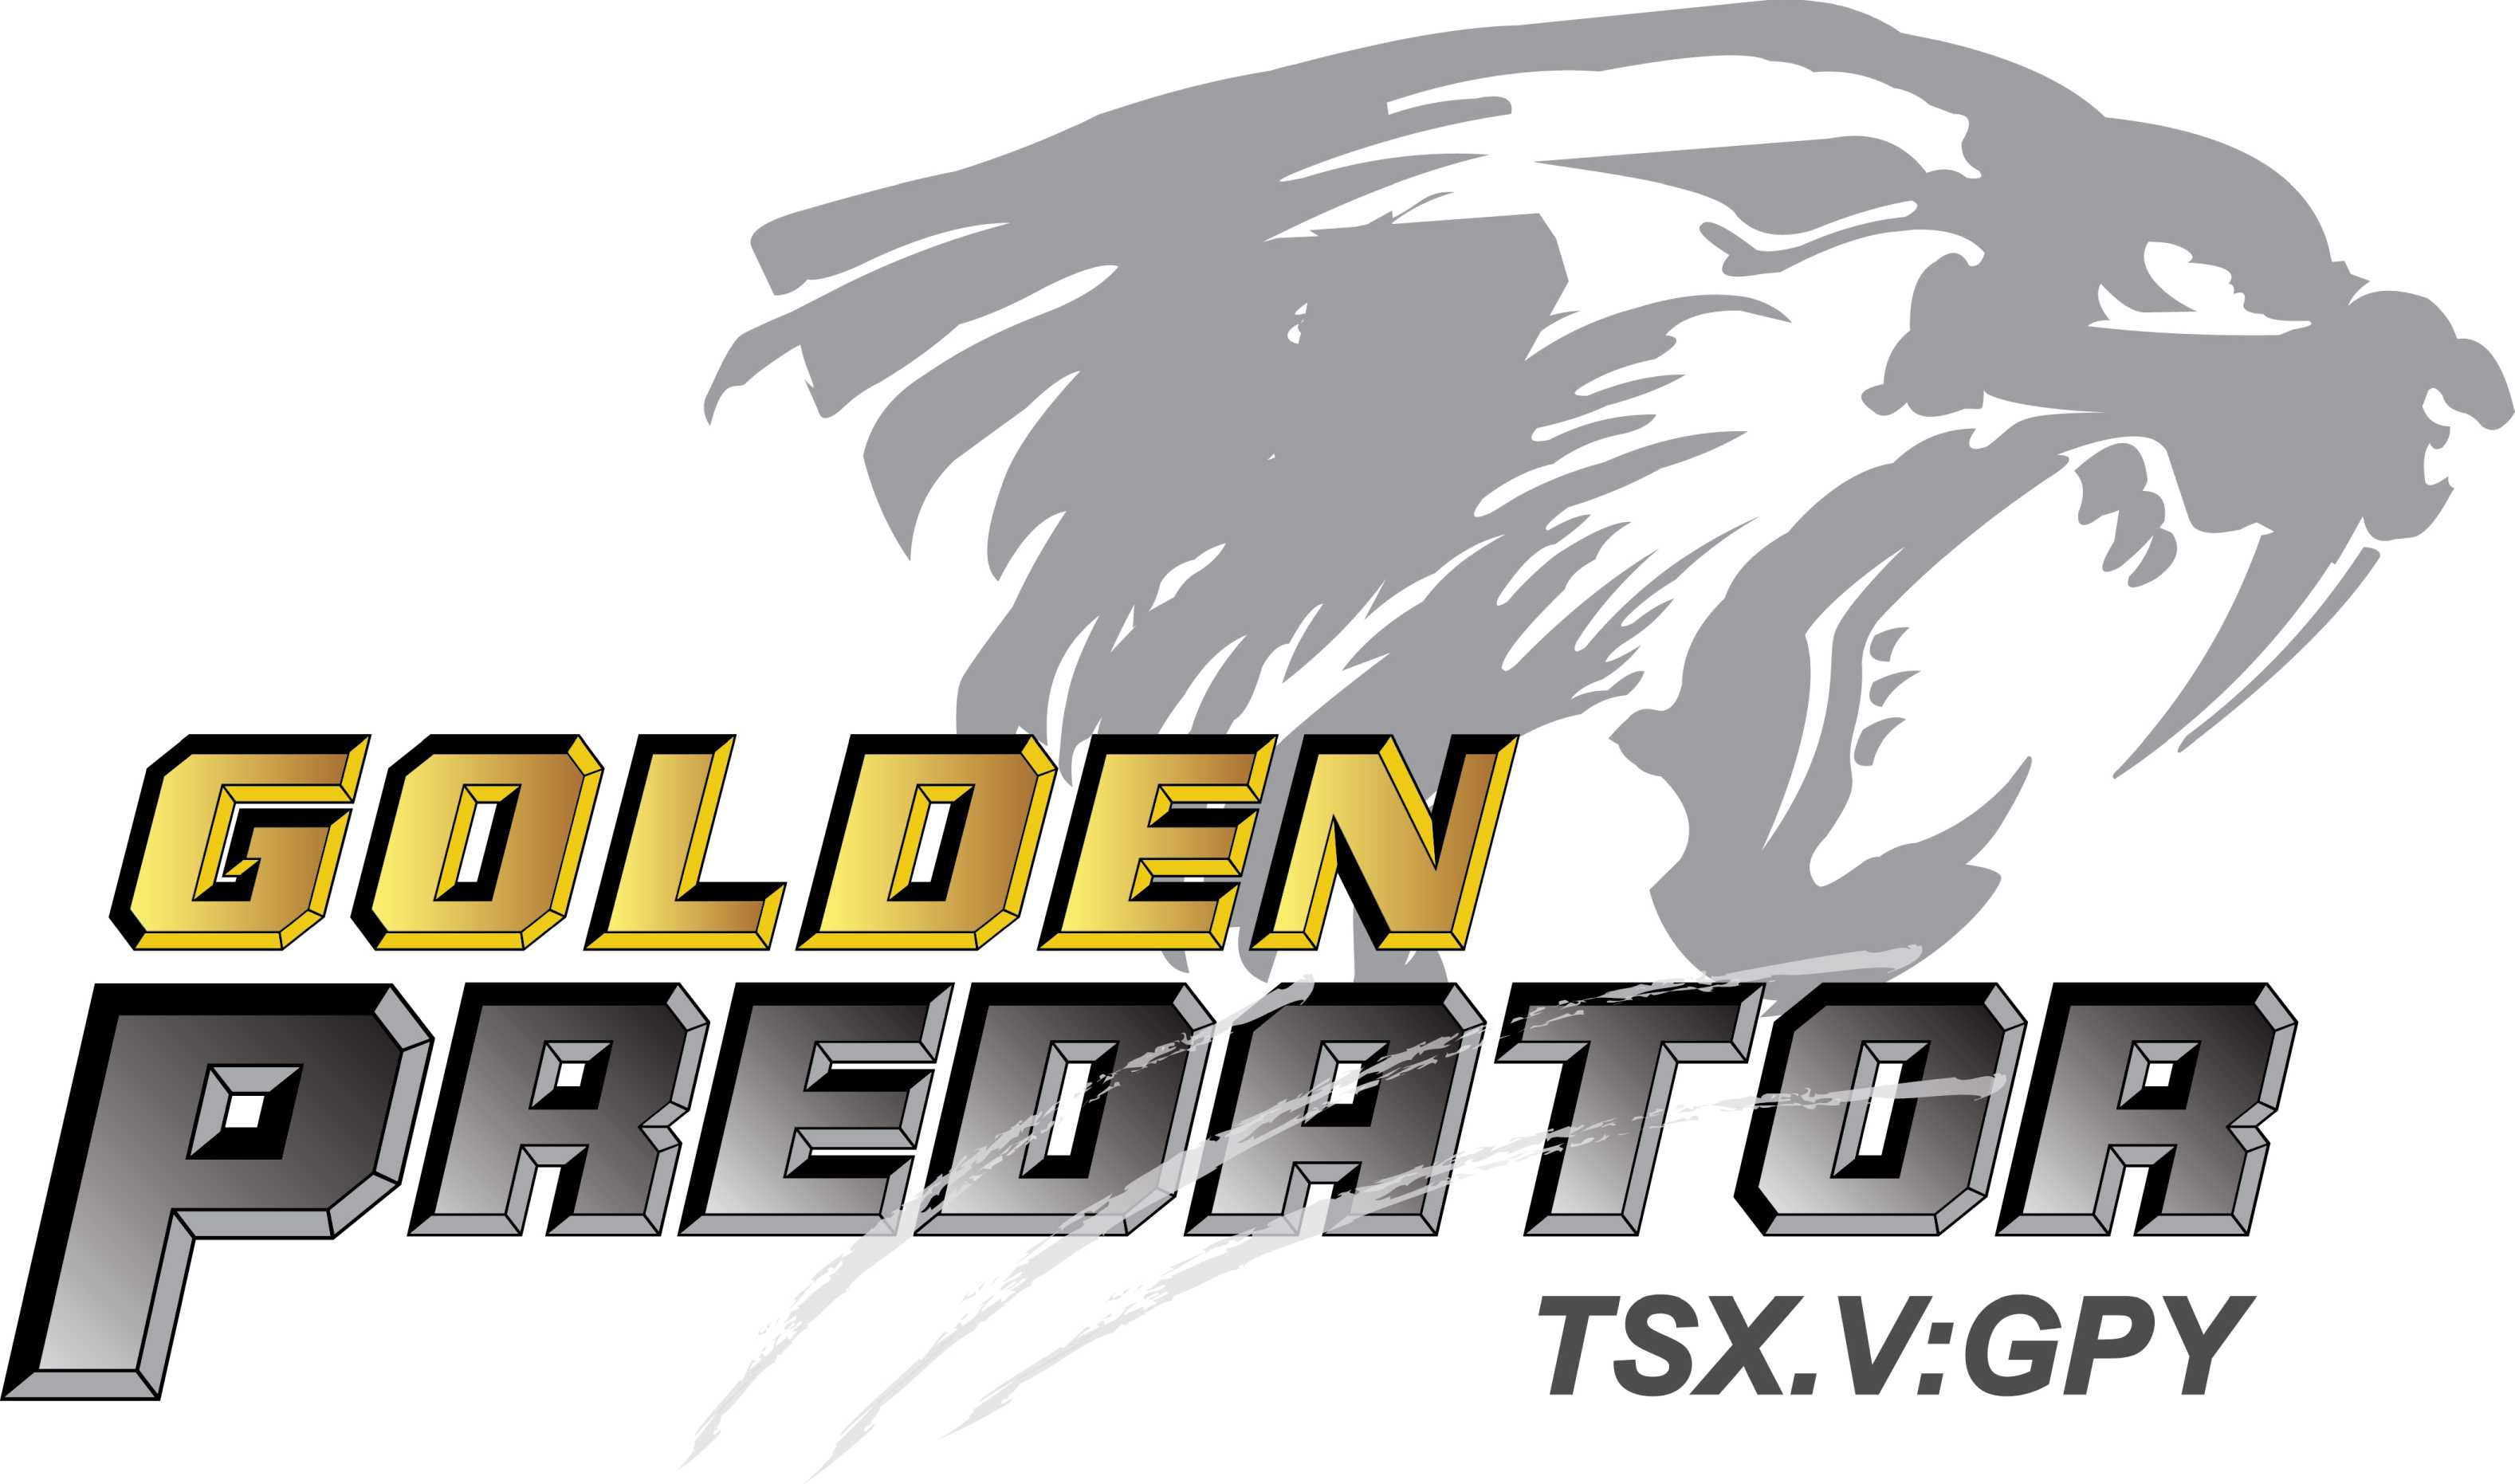 Golden Predator Reports Brewery Creek Mineral Resource Estimate to Be Released in August 2020